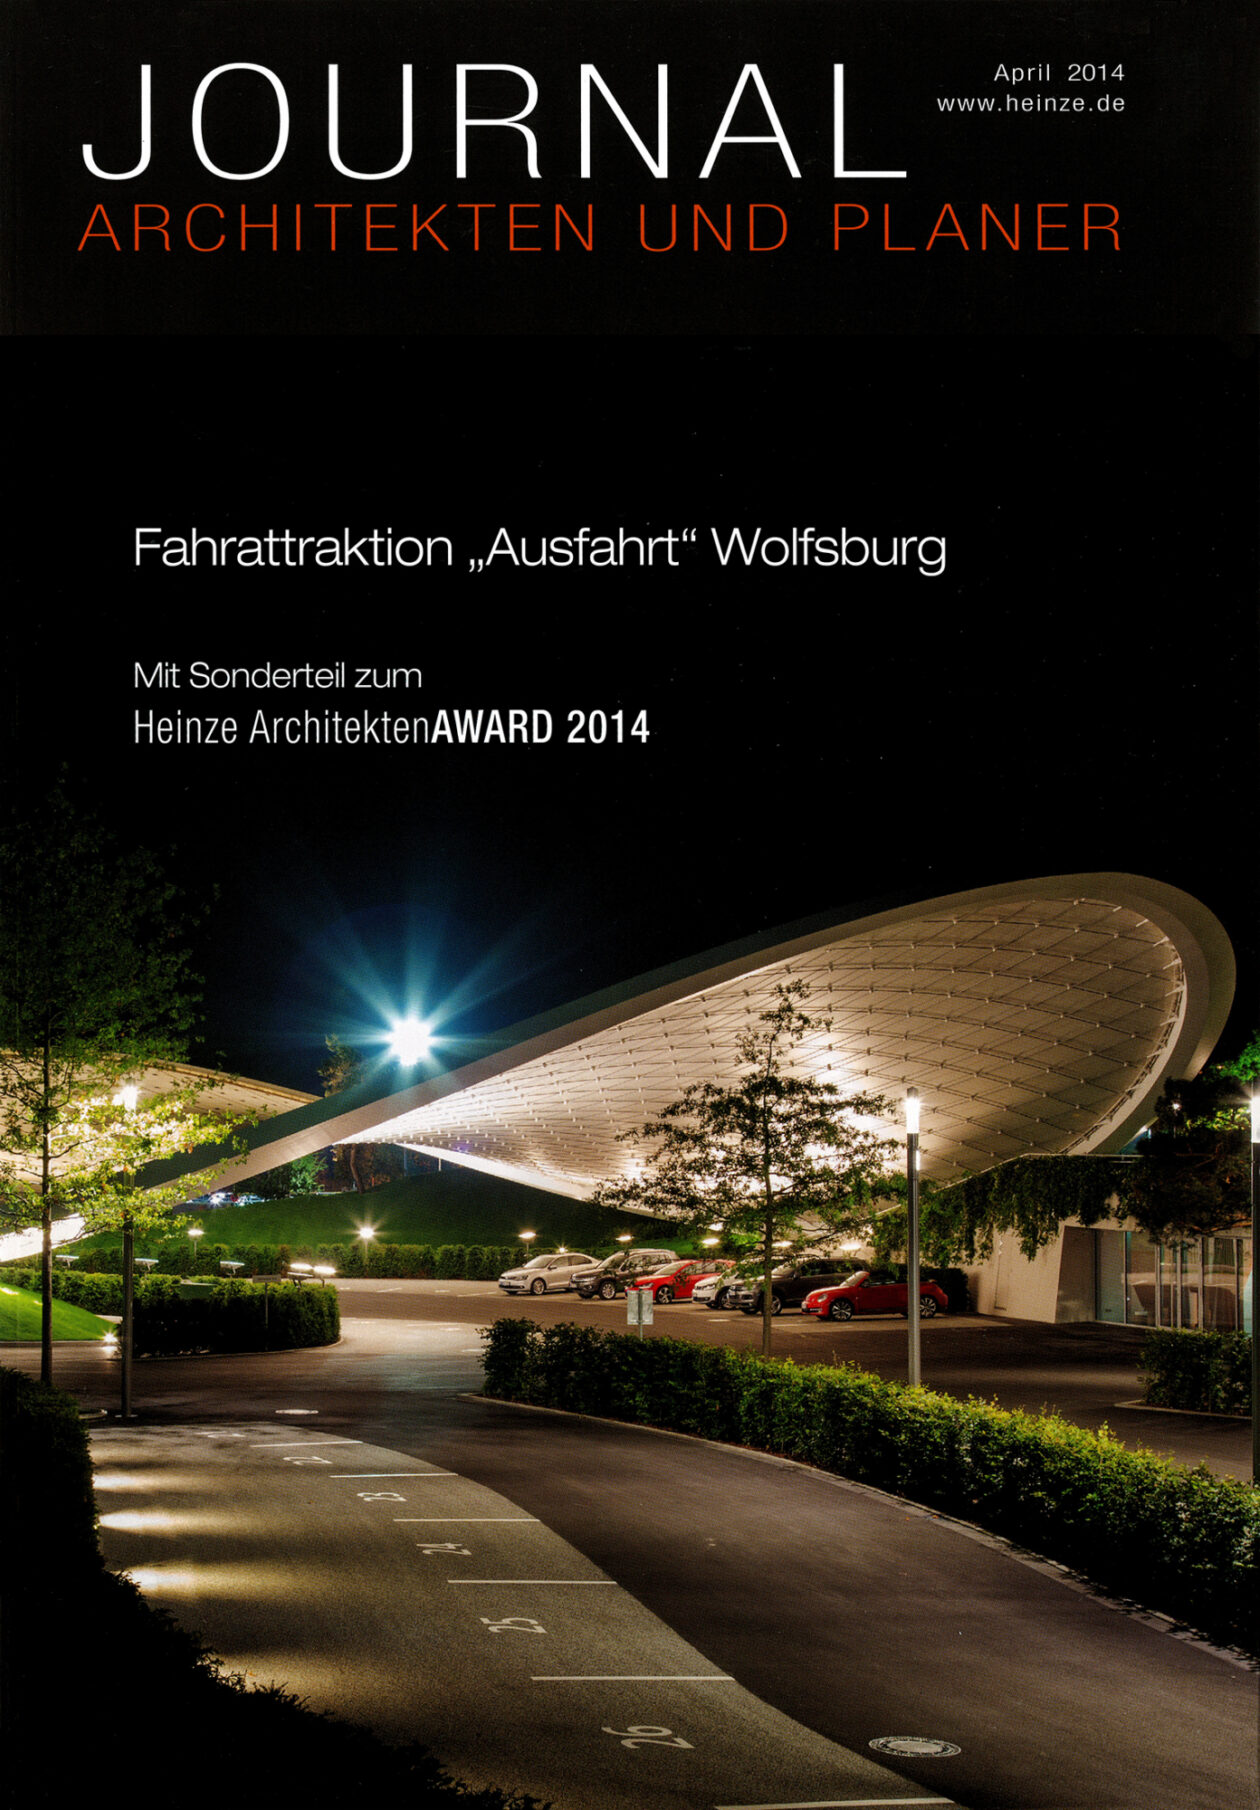 Journal Architekten Und Planer 01